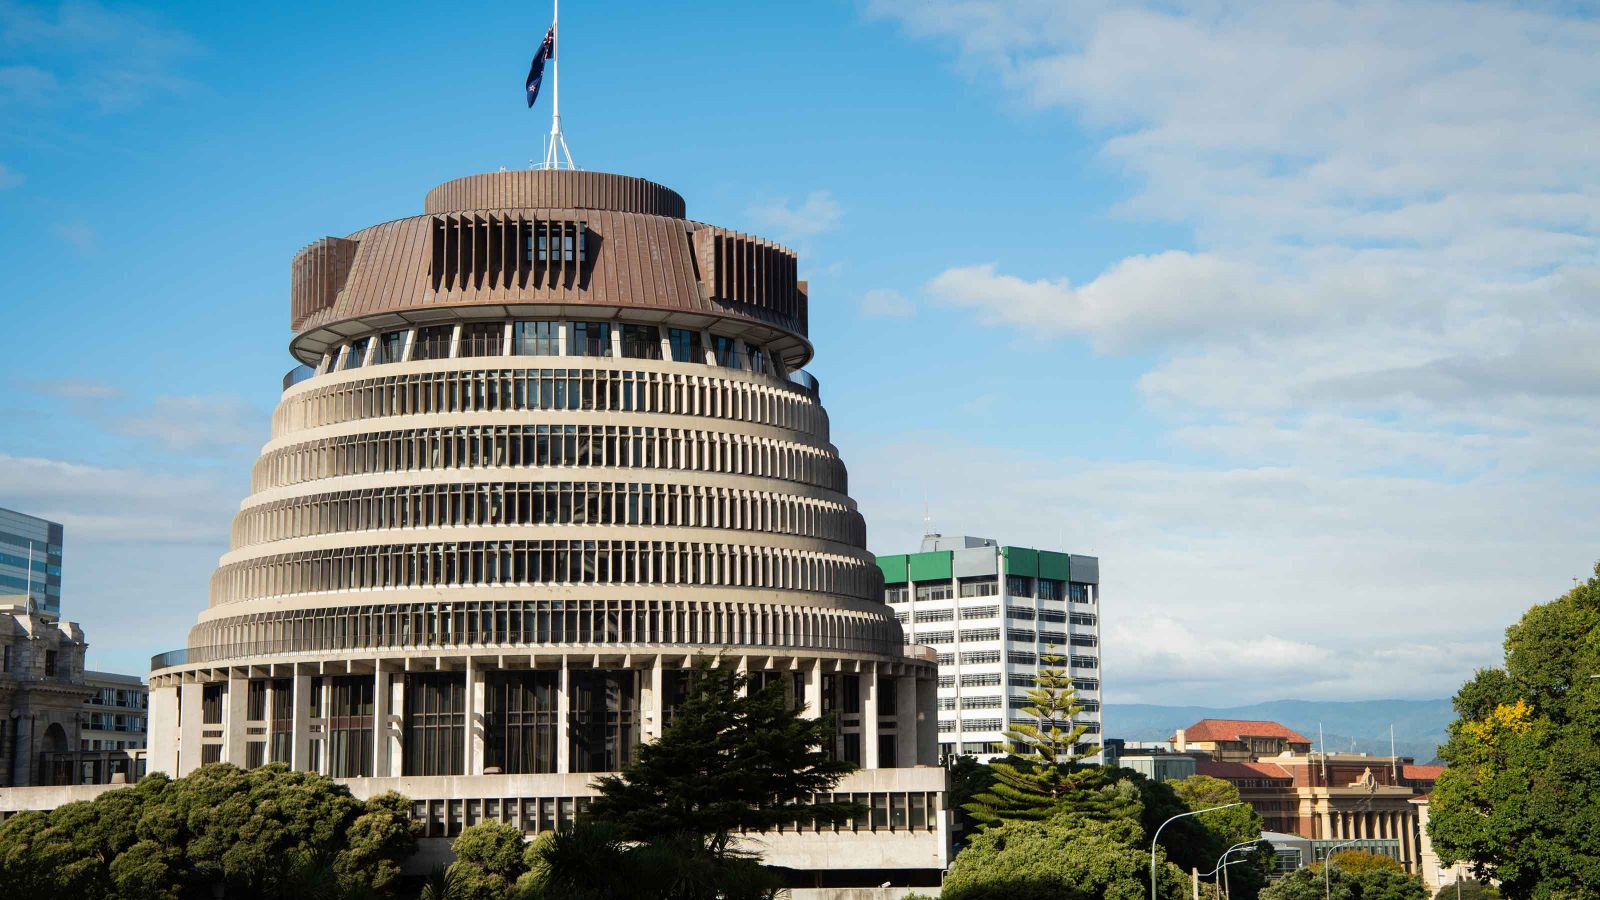 An image of parliament's Beehive building in Wellington.